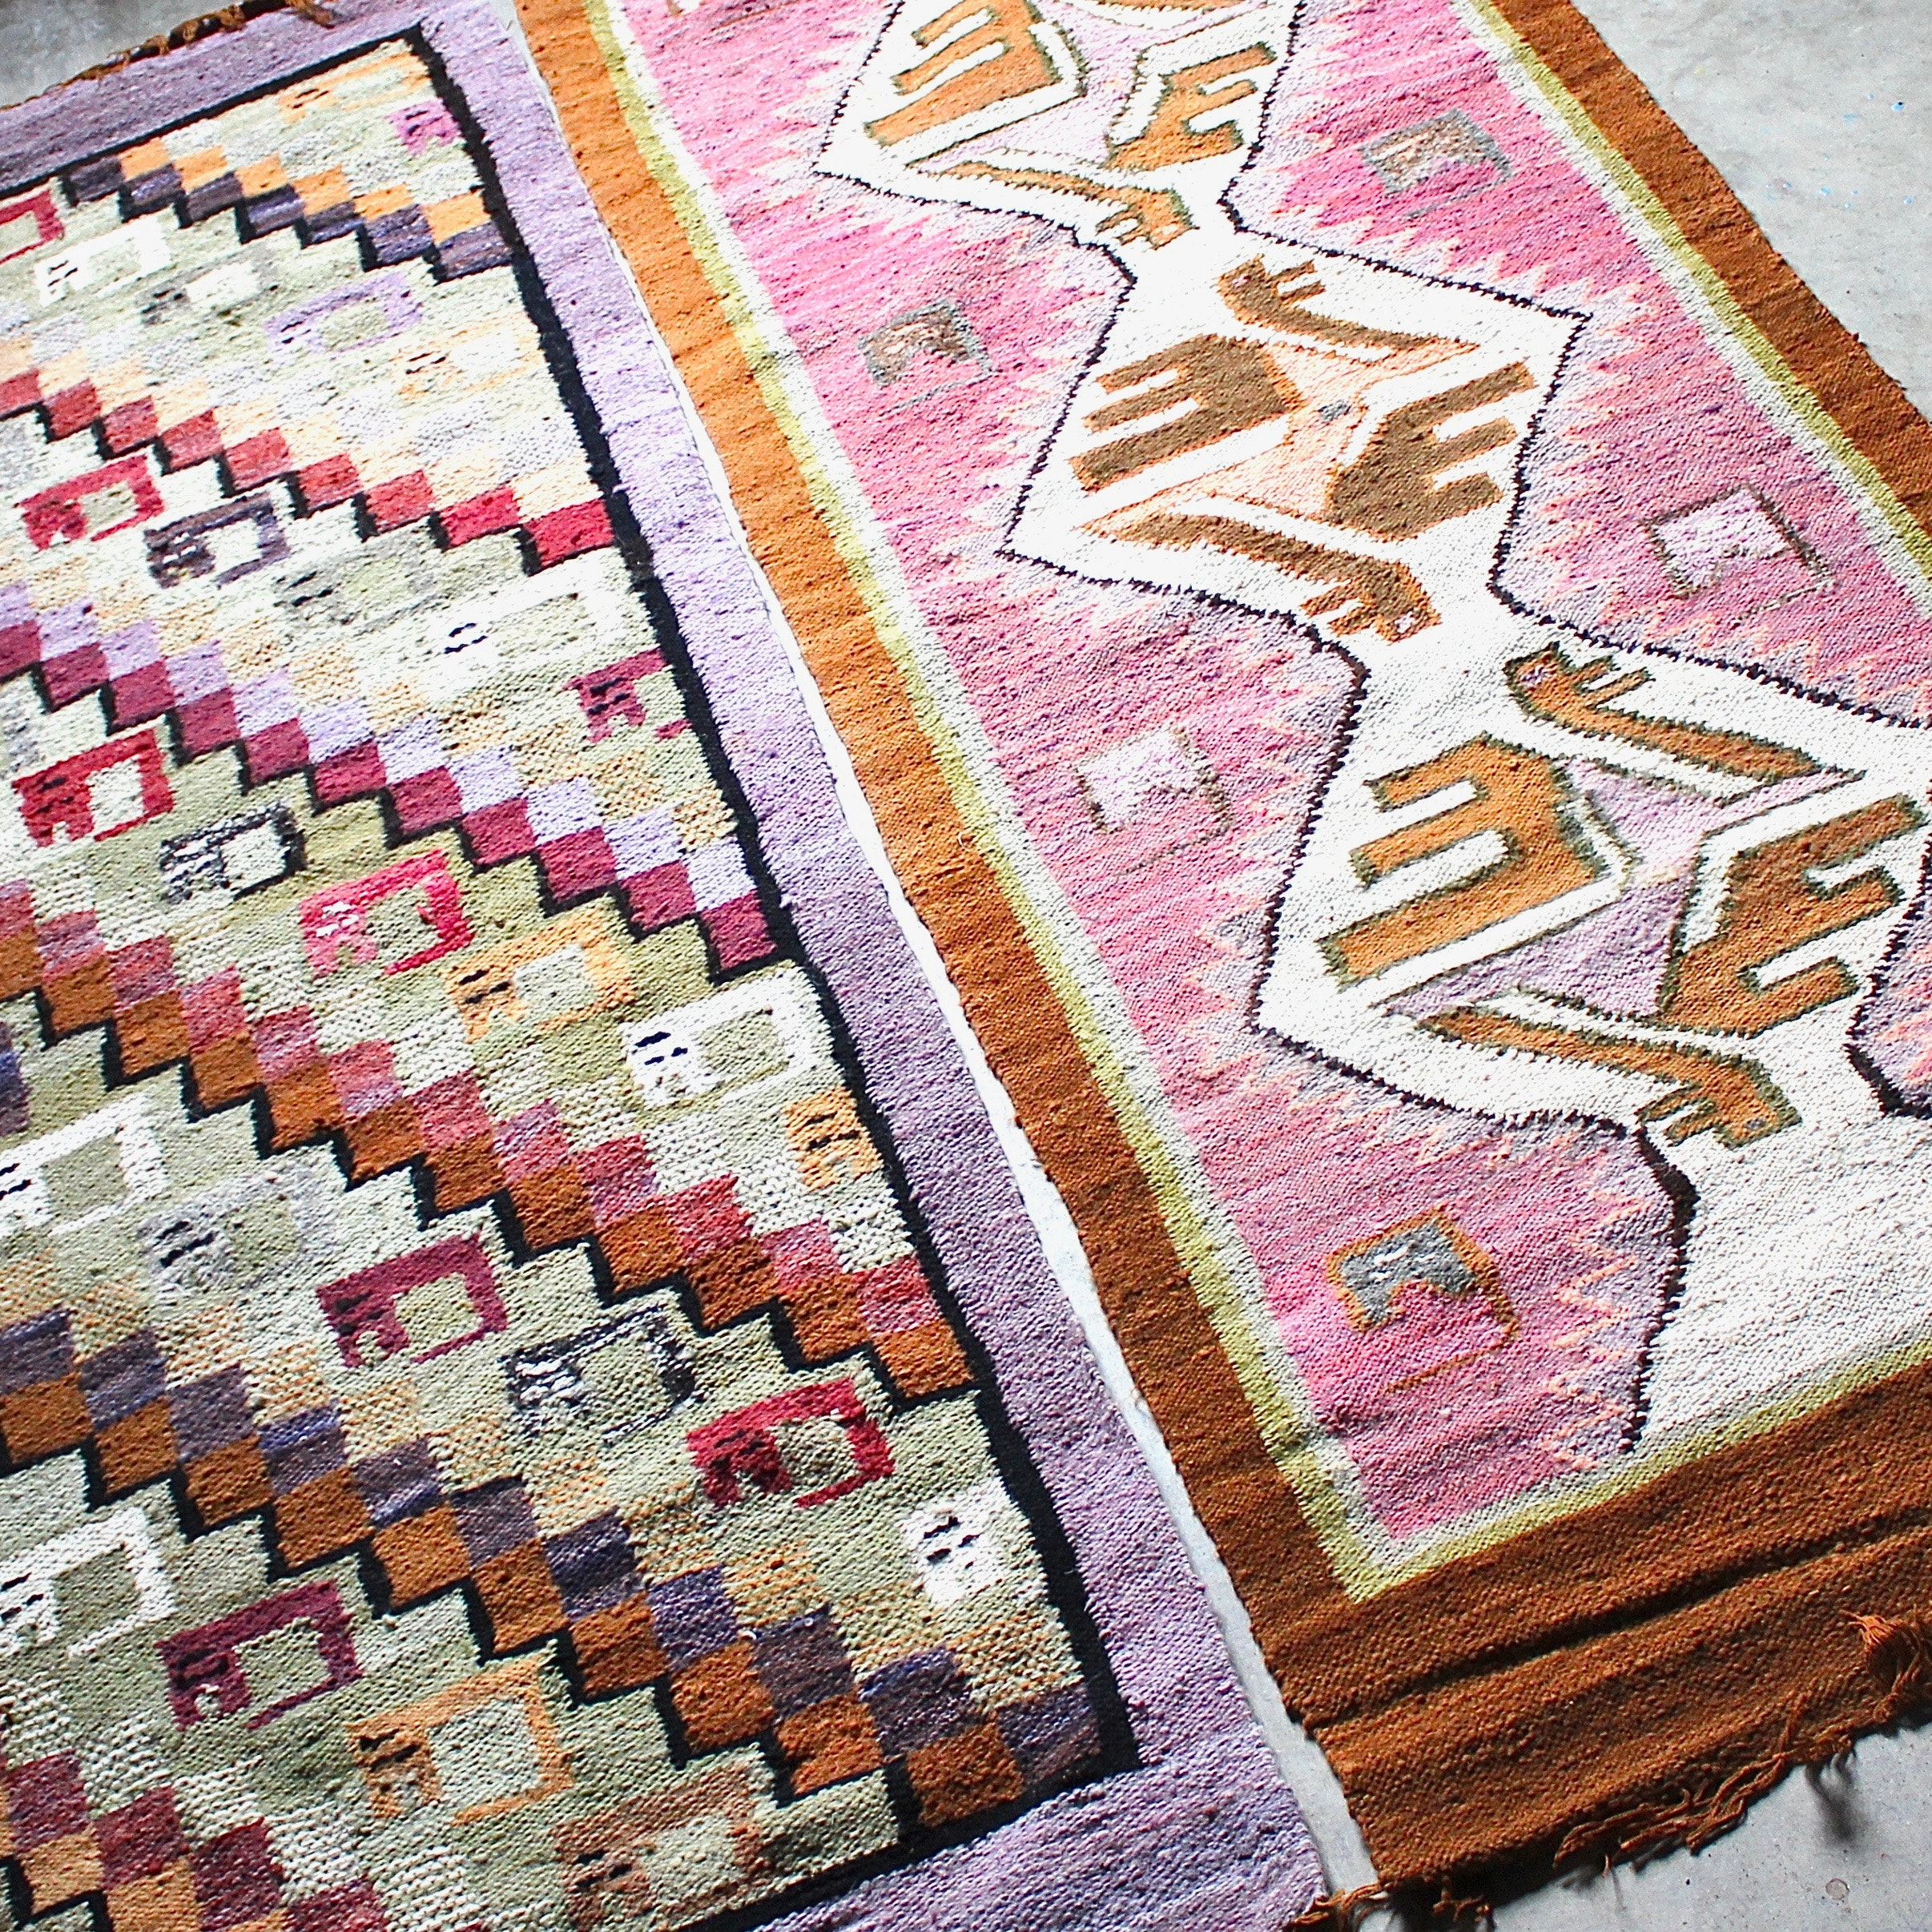 Handwoven Central American Accent Rugs